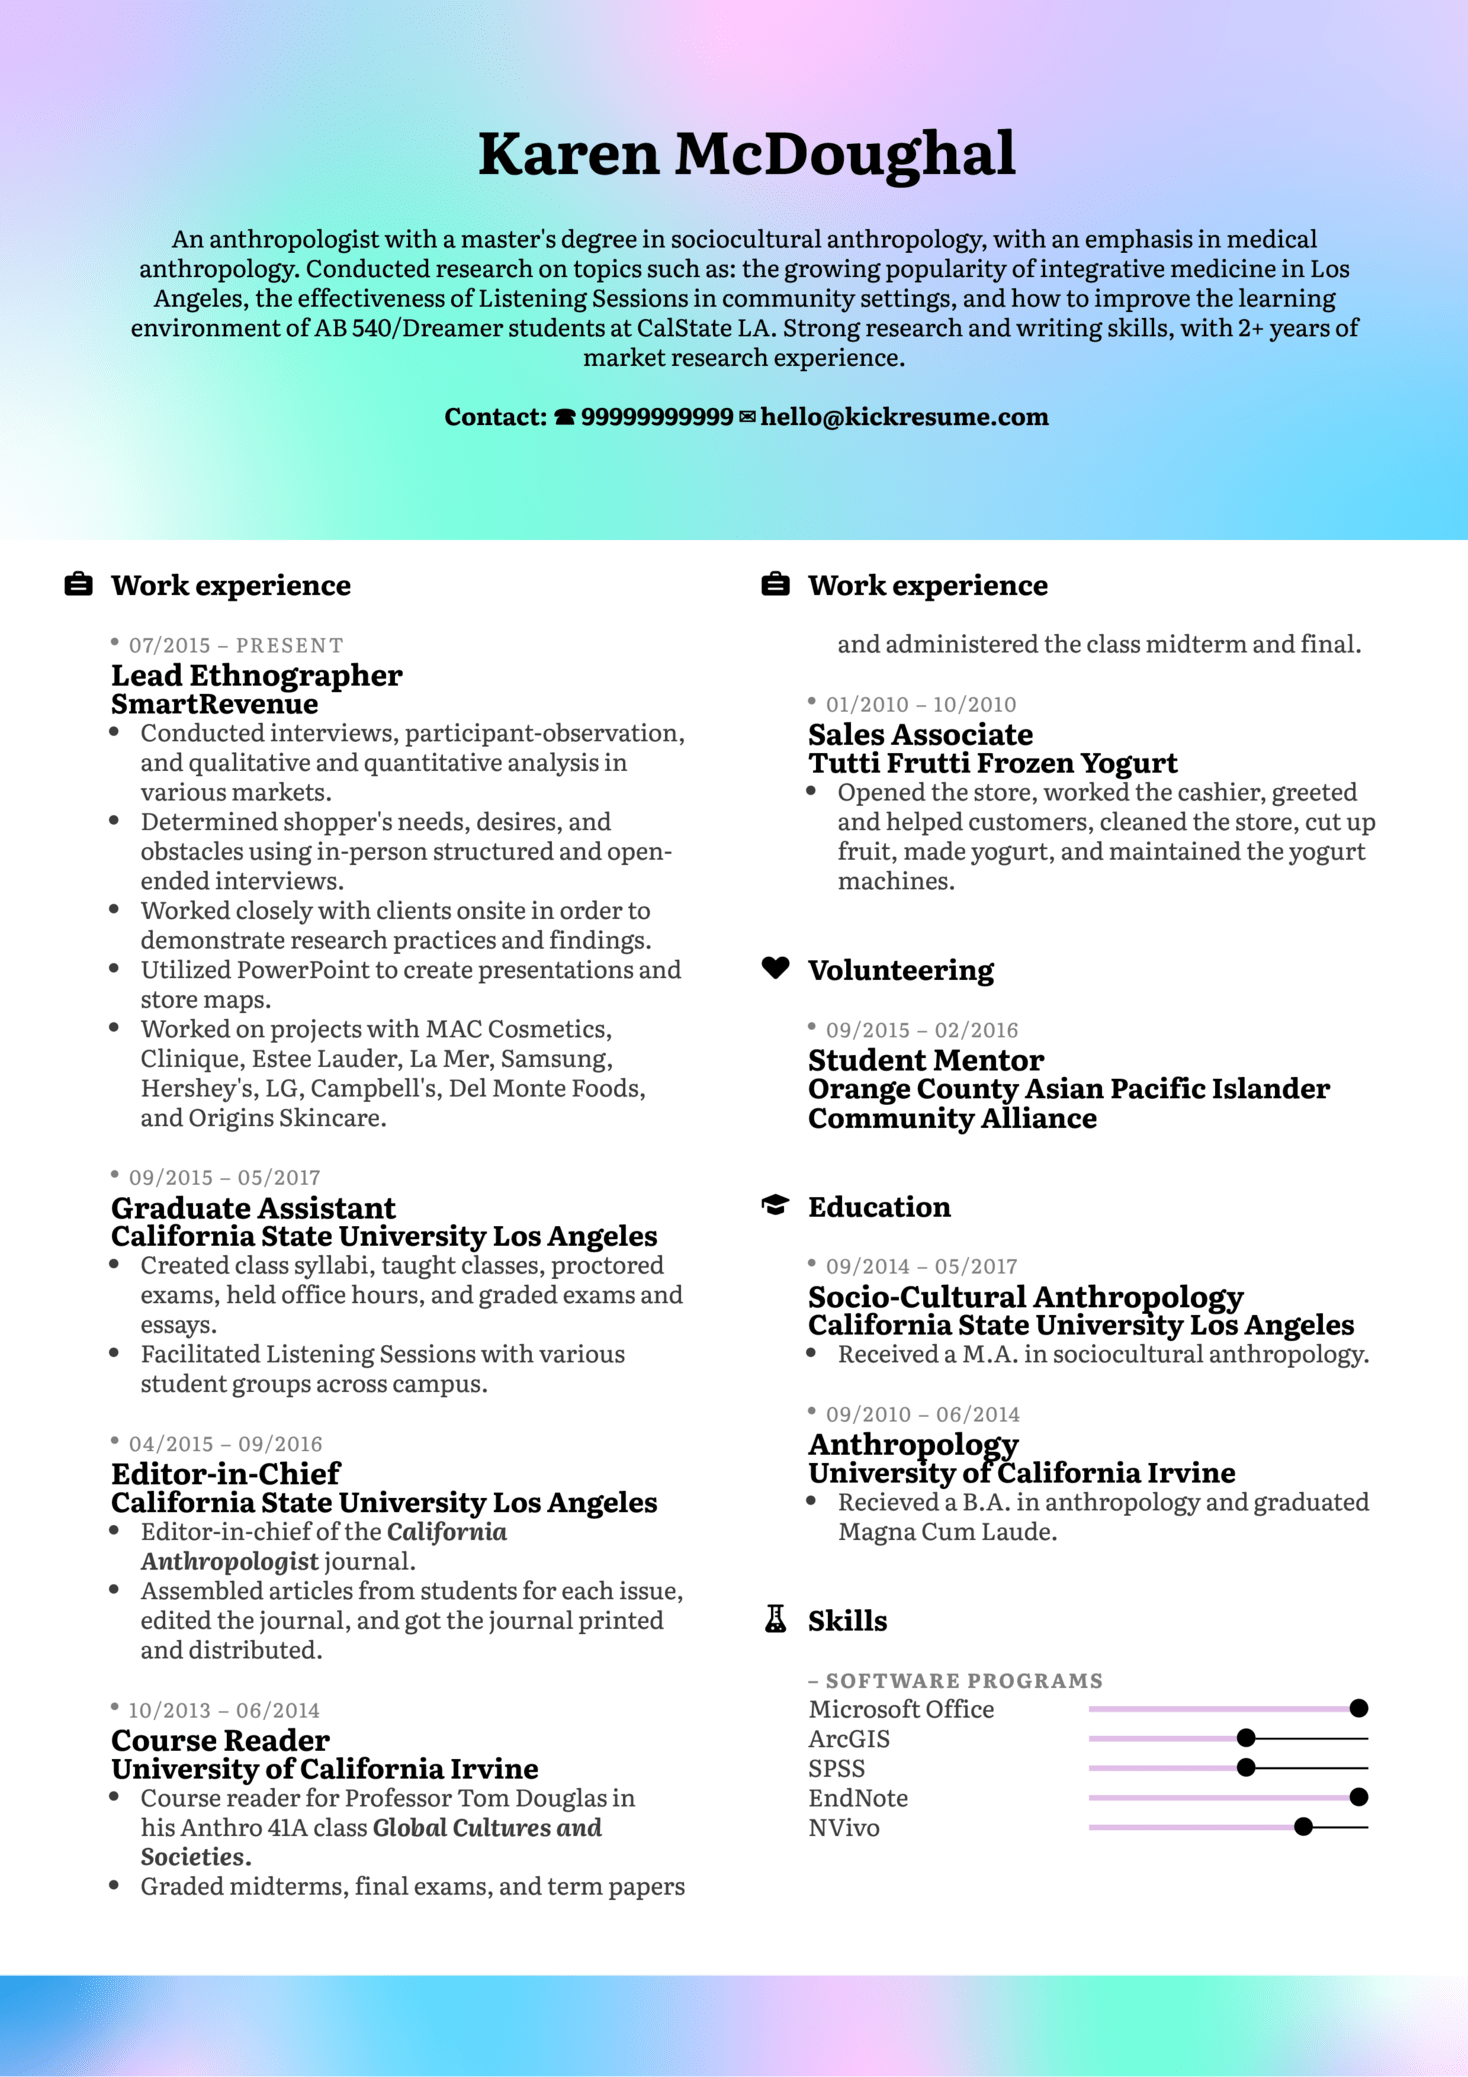 Resume Examples by Real People: Ethnography resume sample | Kickresume